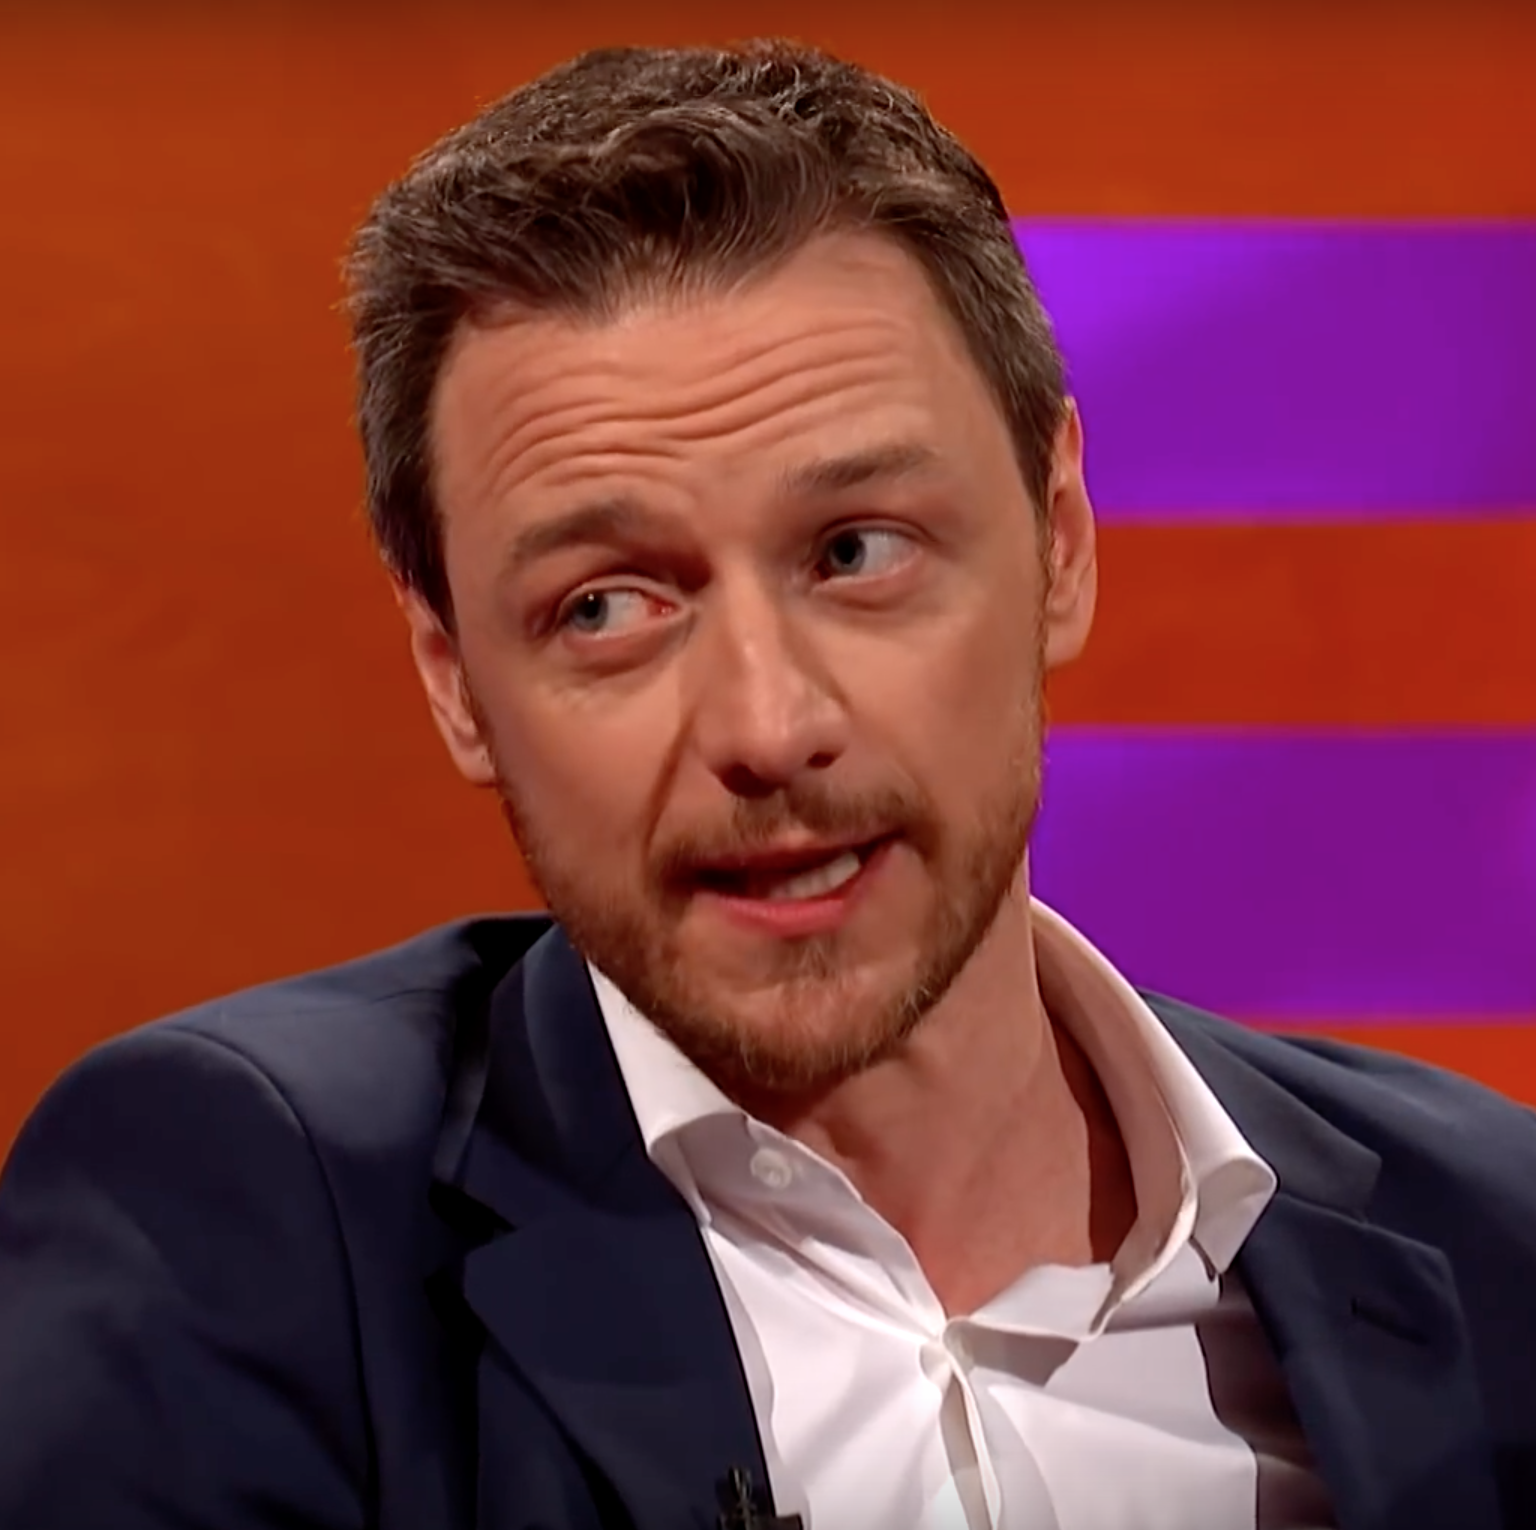 X-Men's James McAvoy knows who he'd want to play if he joined Worlds of DC